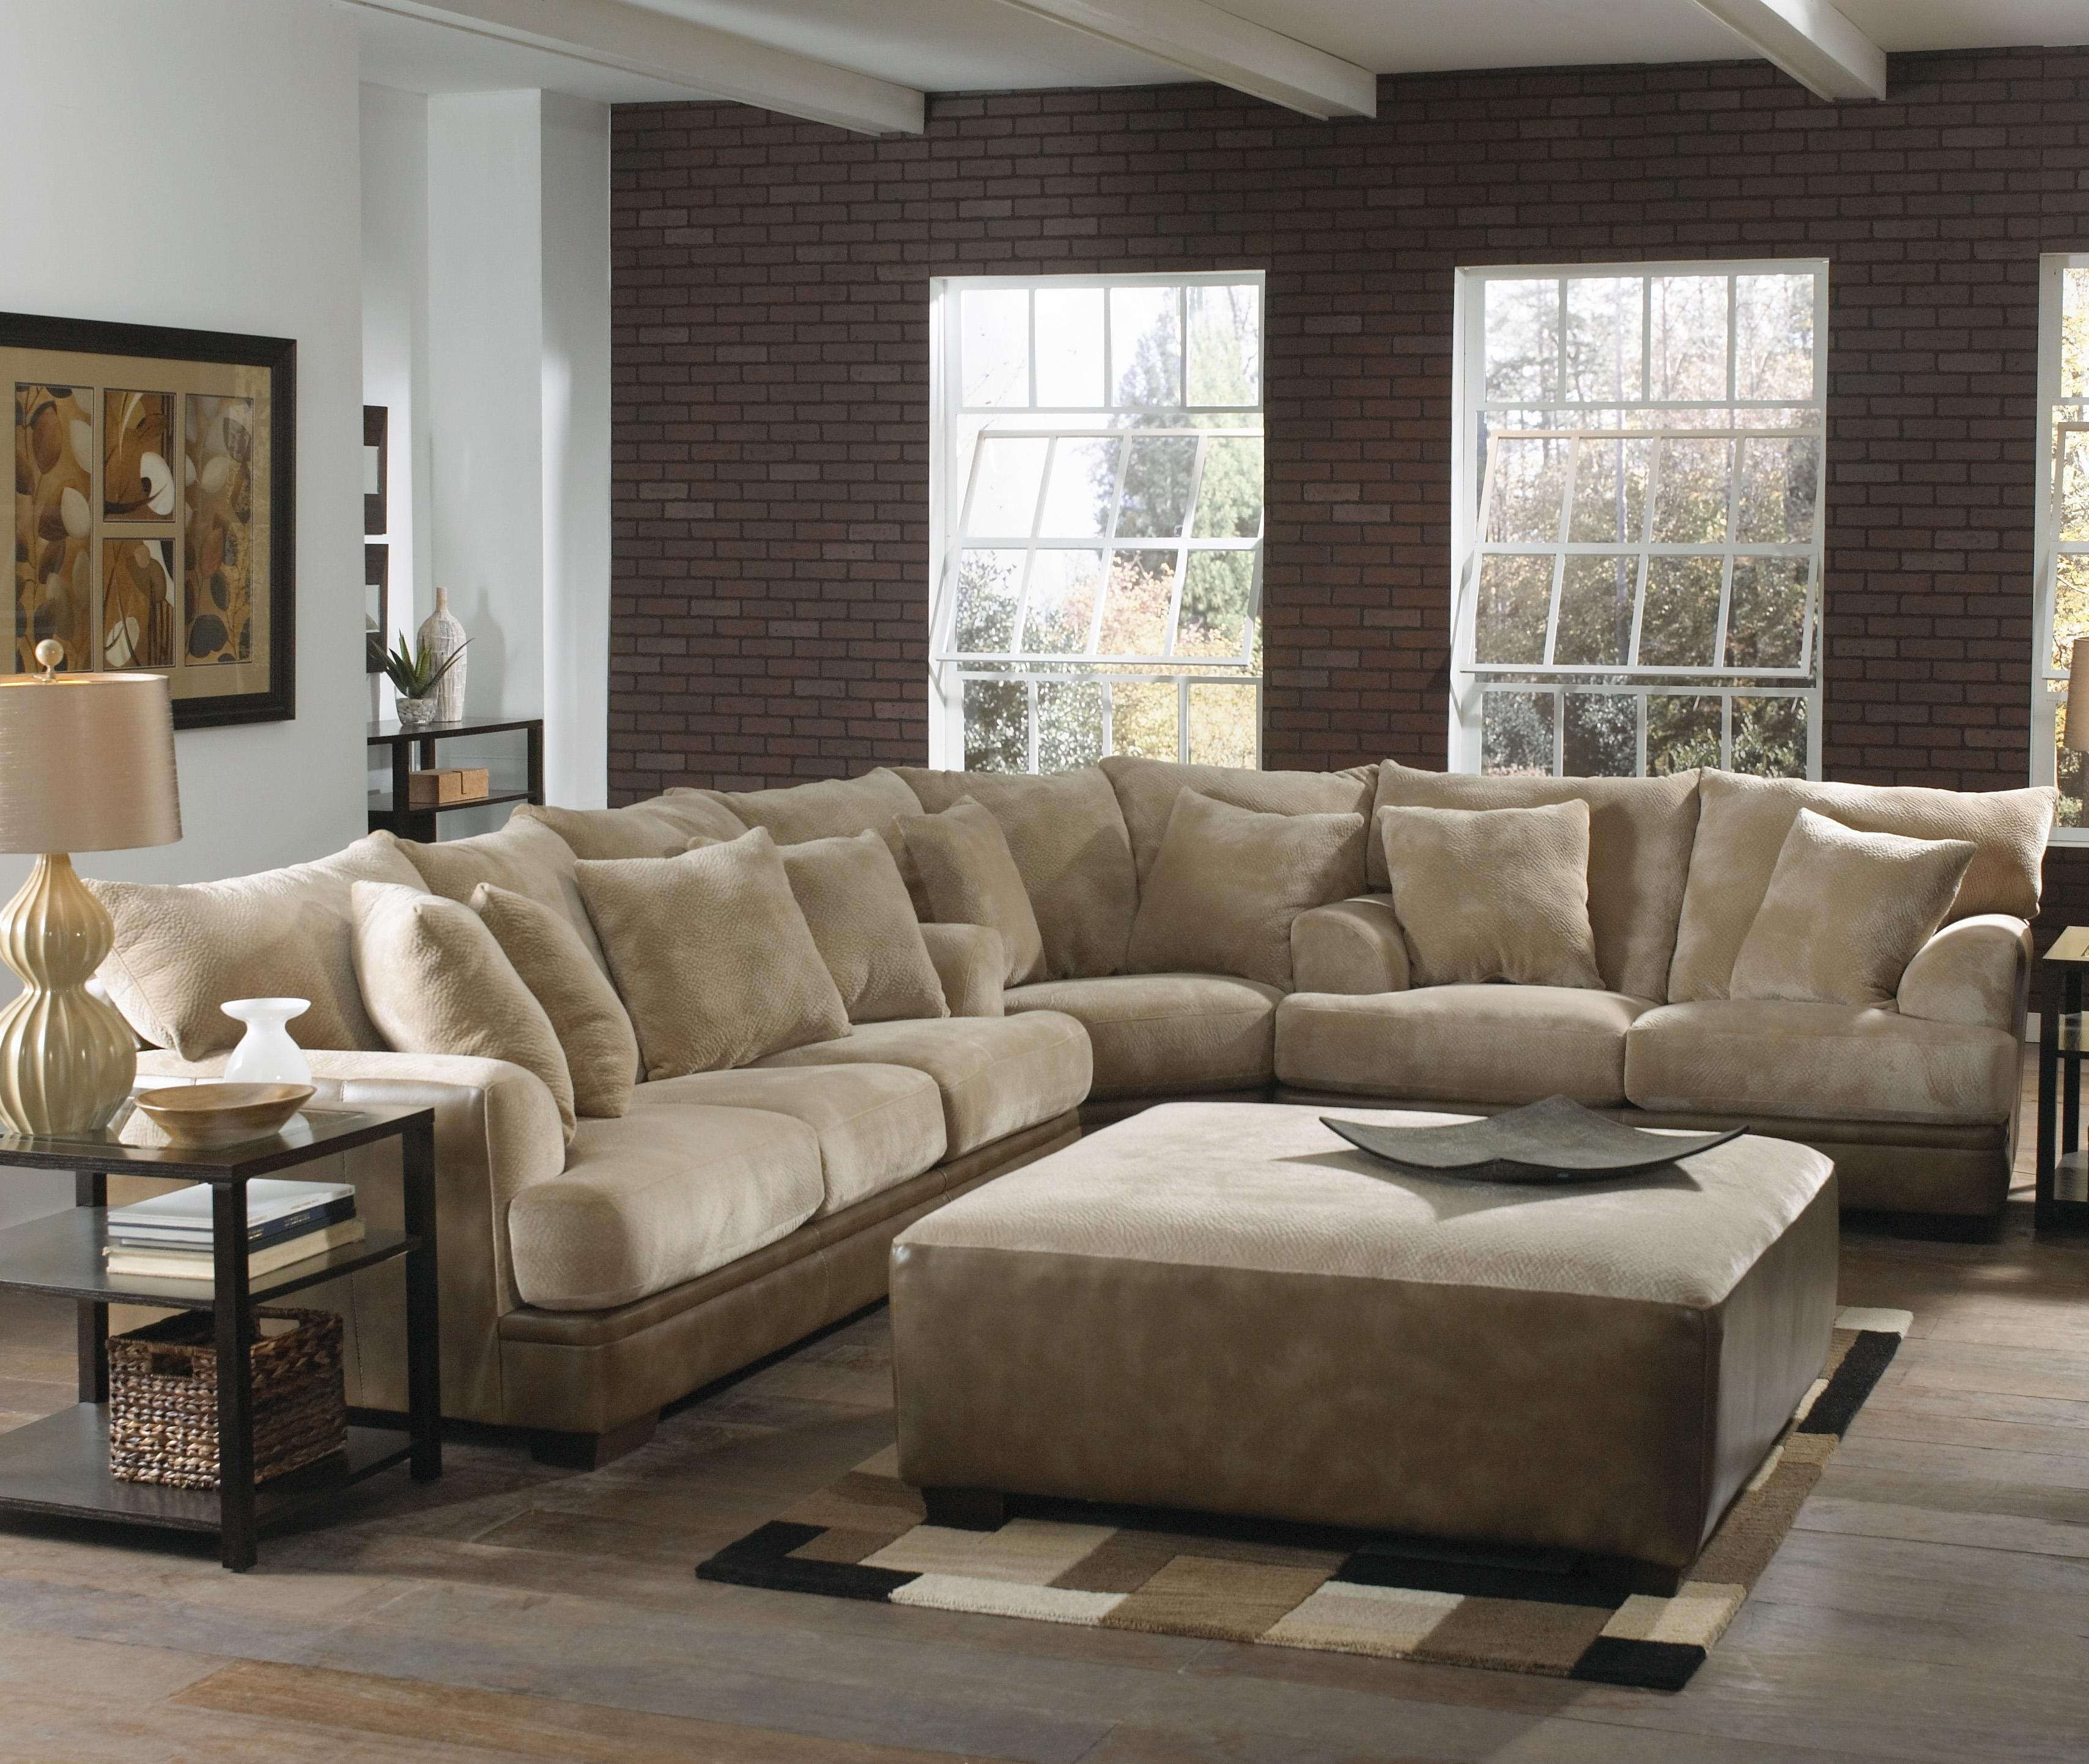 Pinsofascouch On Living Room Sofa | Pinterest | Sofa, Furniture Inside Norfolk Chocolate 3 Piece Sectionals With Laf Chaise (Image 20 of 25)